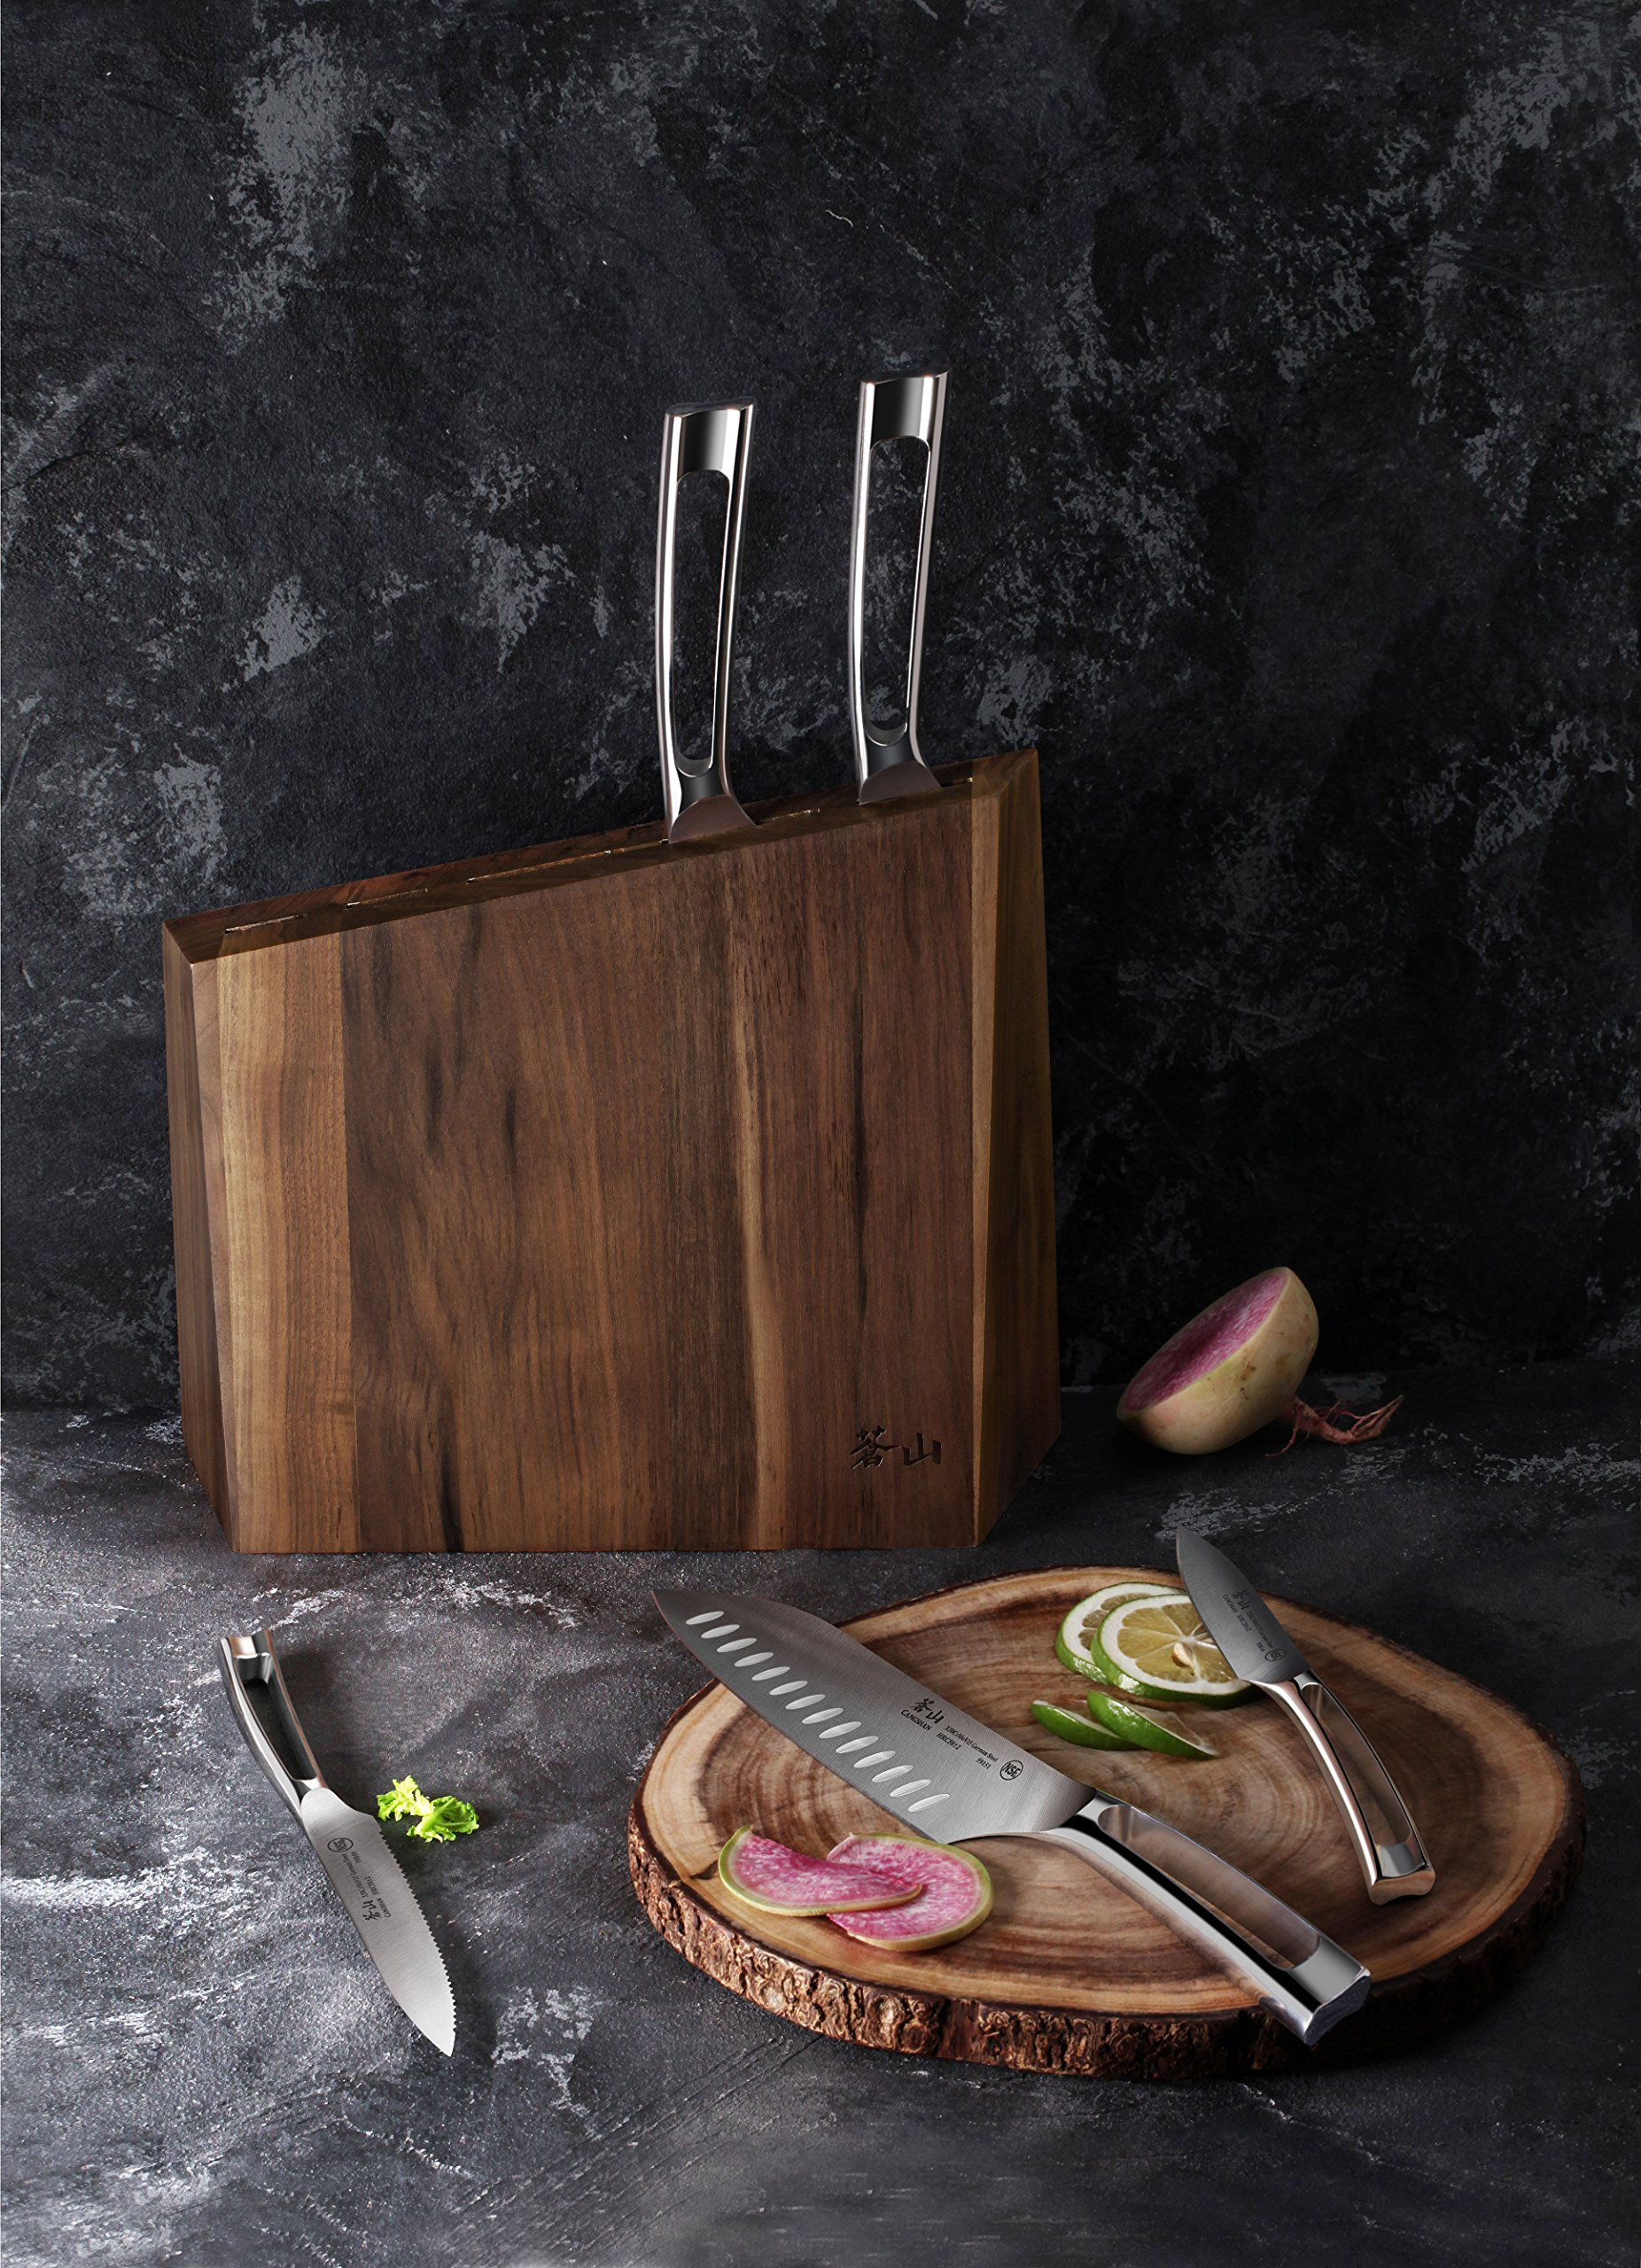 Cangshan N1 Series 61017 6-Piece German Steel Forged Knife Block Set, Walnut Block by Cangshan (Image #7)